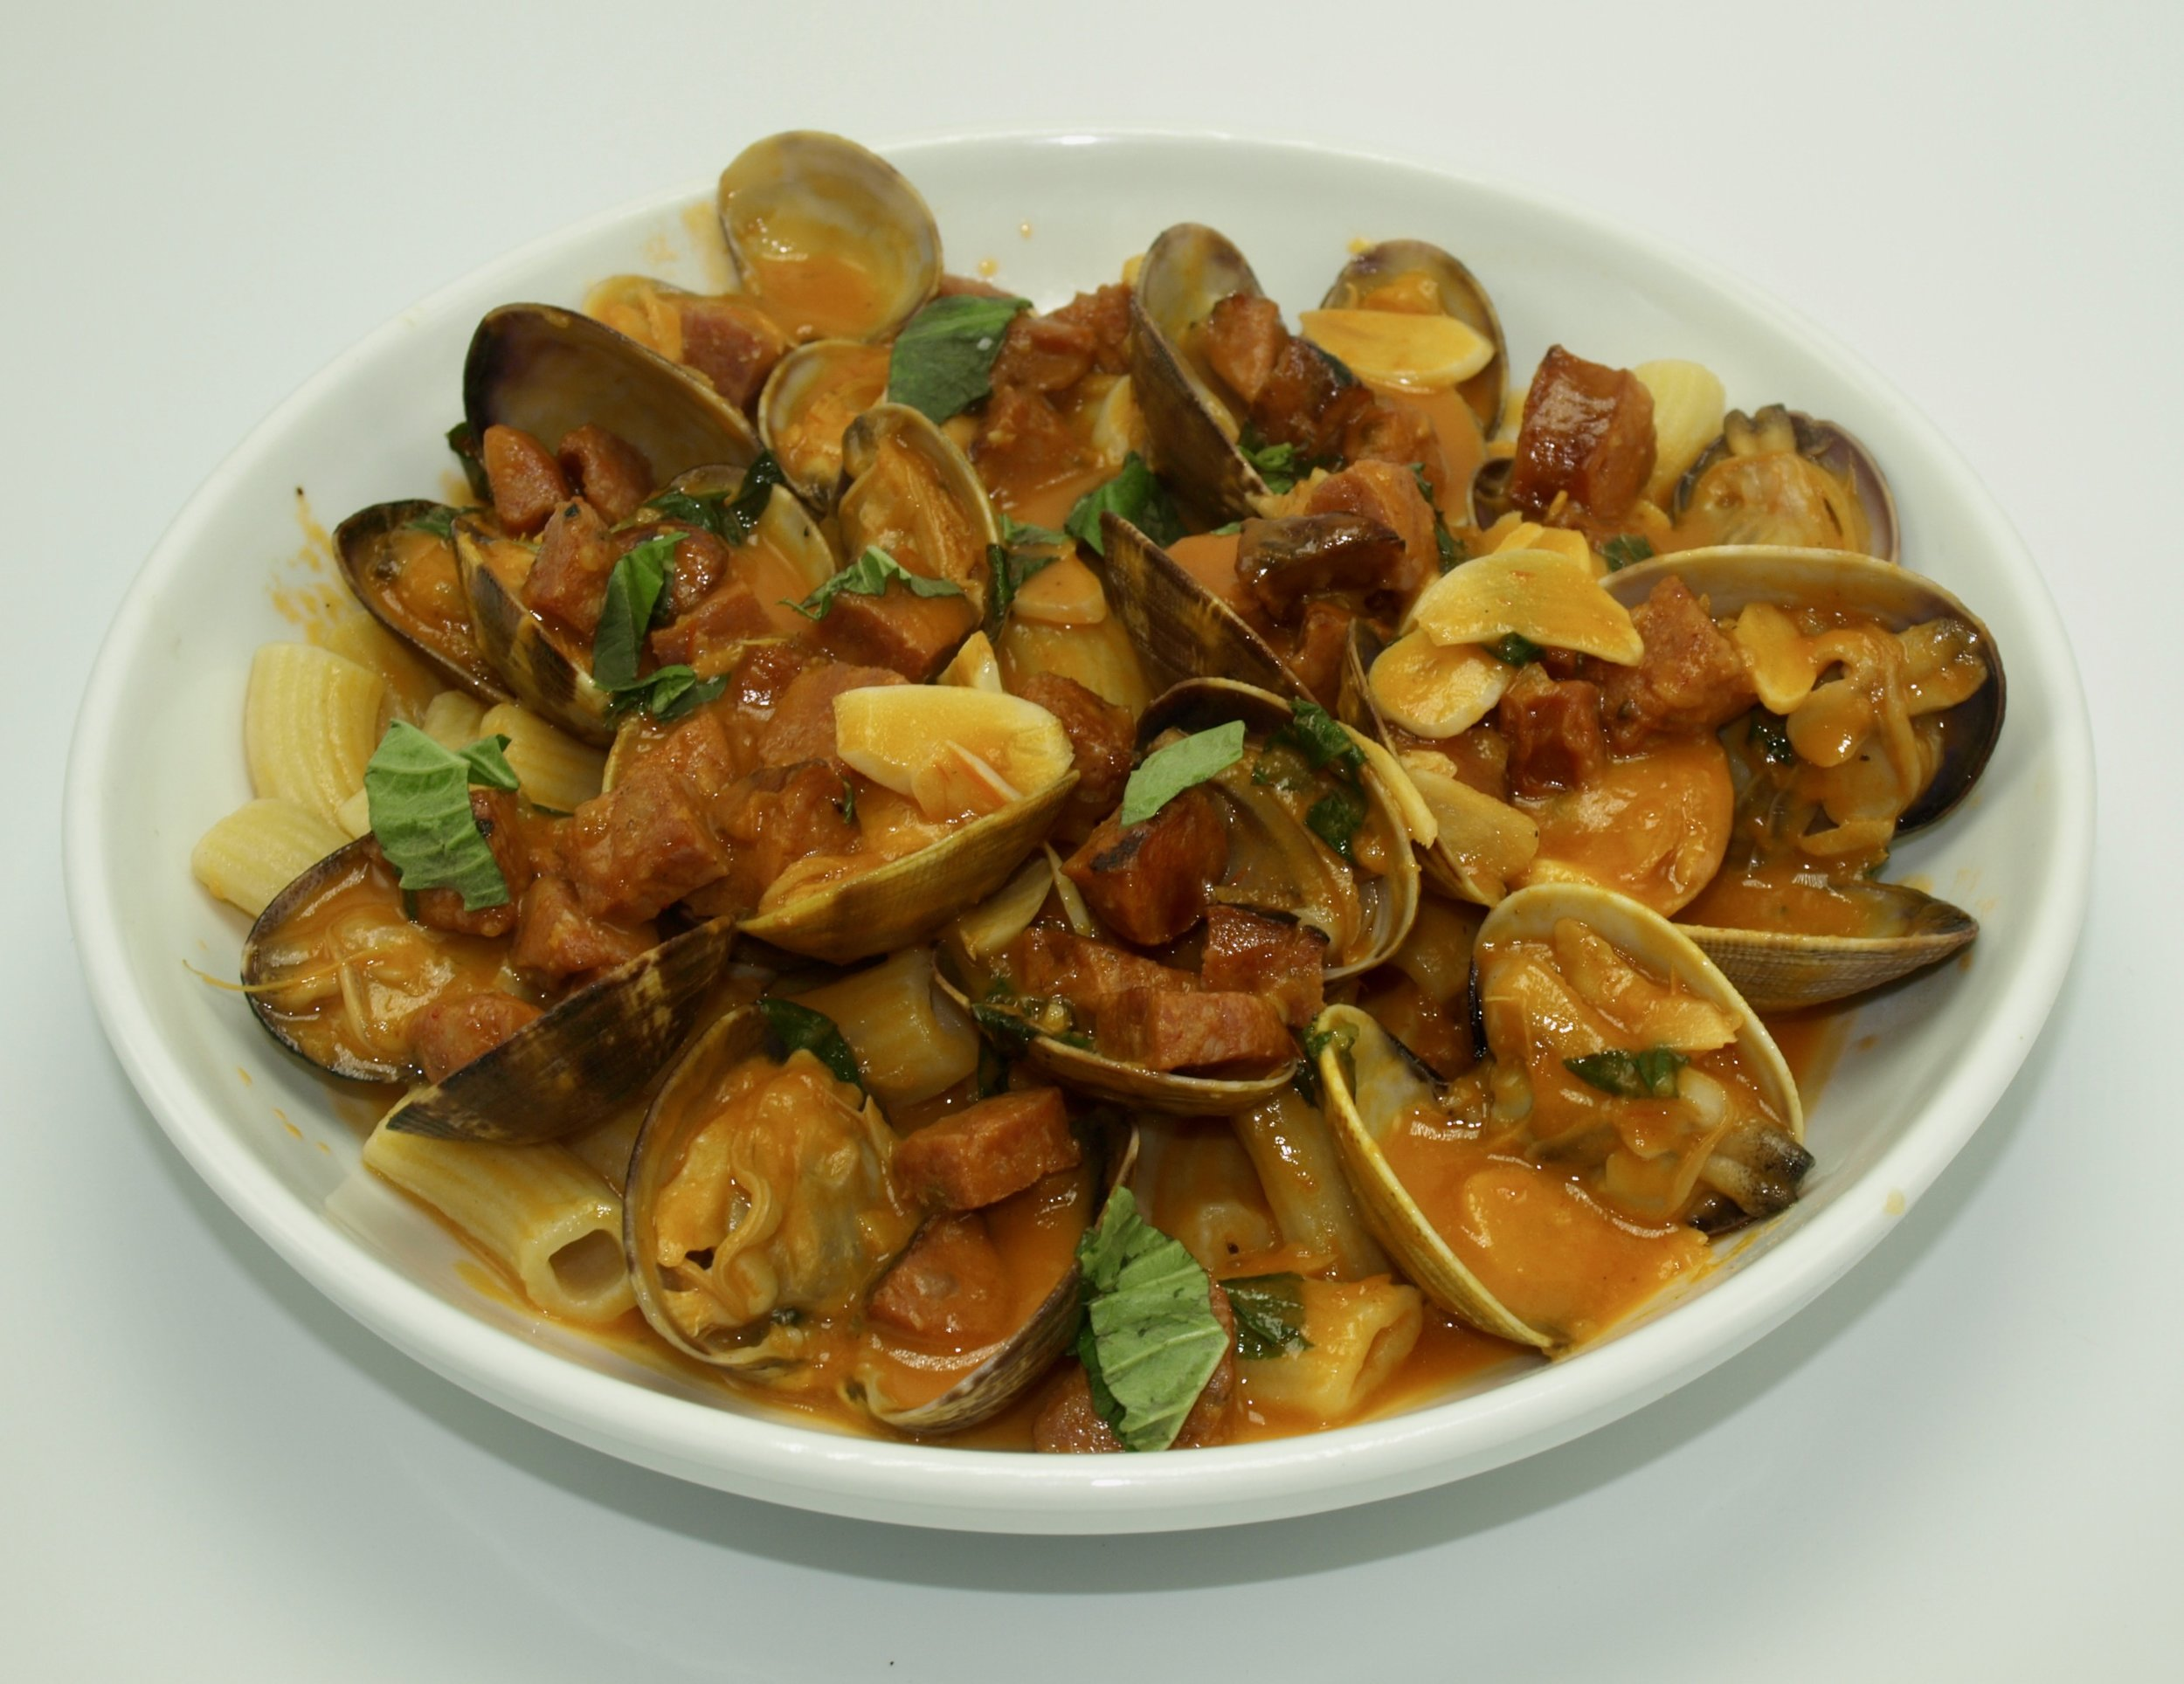 Some Foodie favorites from Piccolo Mondo include: Rigatoni with Manila clams, chorizo and tomato-basil brodetto.